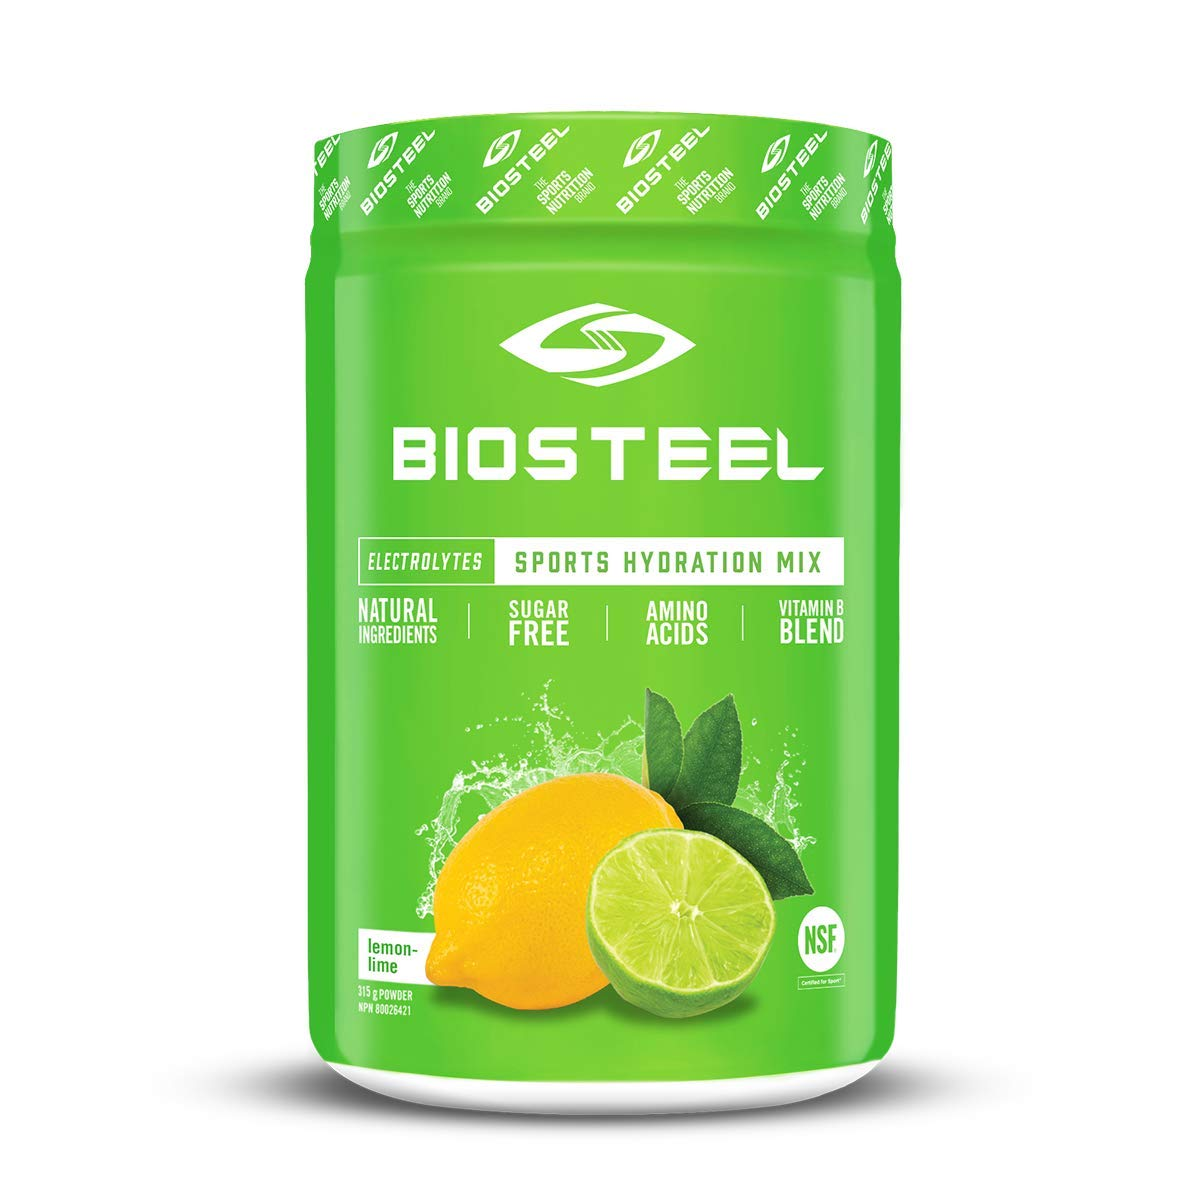 Biosteel High Performance Sports Drink Powder, Naturally Sweetened with Stevia, Lemon Lime, 315 Gram by BioSteel (Image #1)